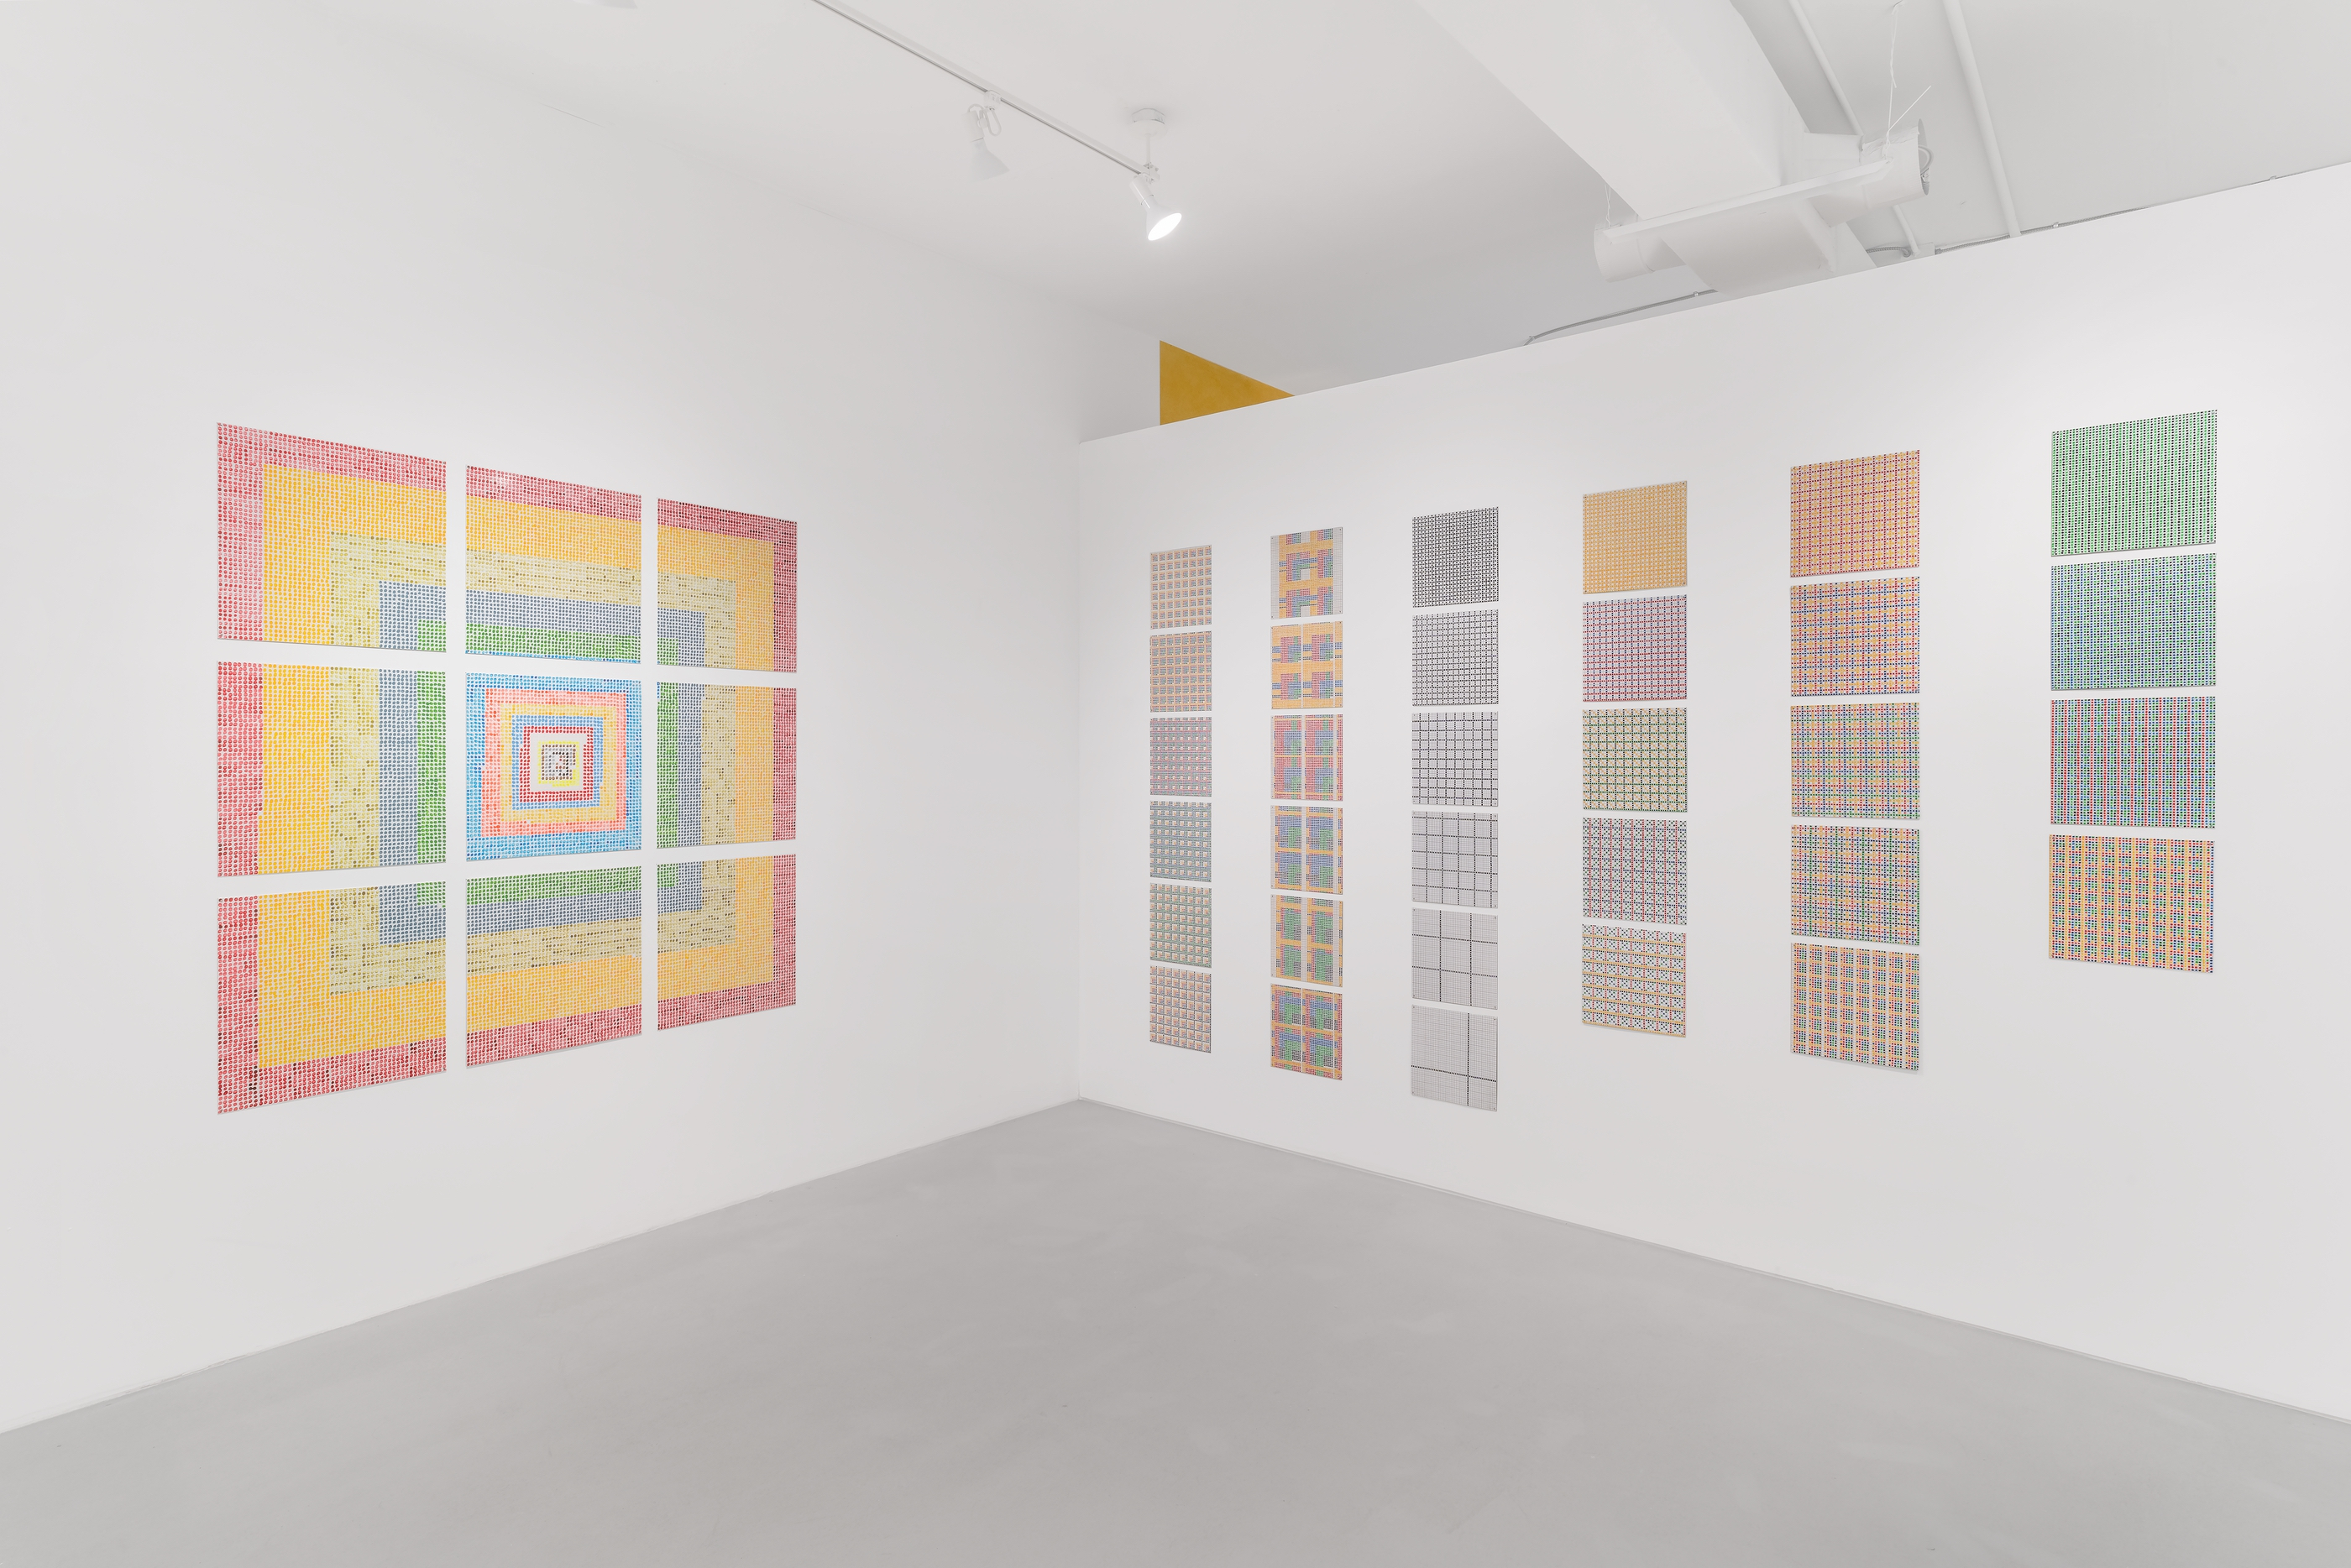 Installation view, Jennifer Bartlett: Grids & Dots, Paula Cooper Gallery, 243A Worth Avenue, Palm Beach, FL, January 16 – February 7, 2021. Photo: Michael Lopez with Zachary Balber.